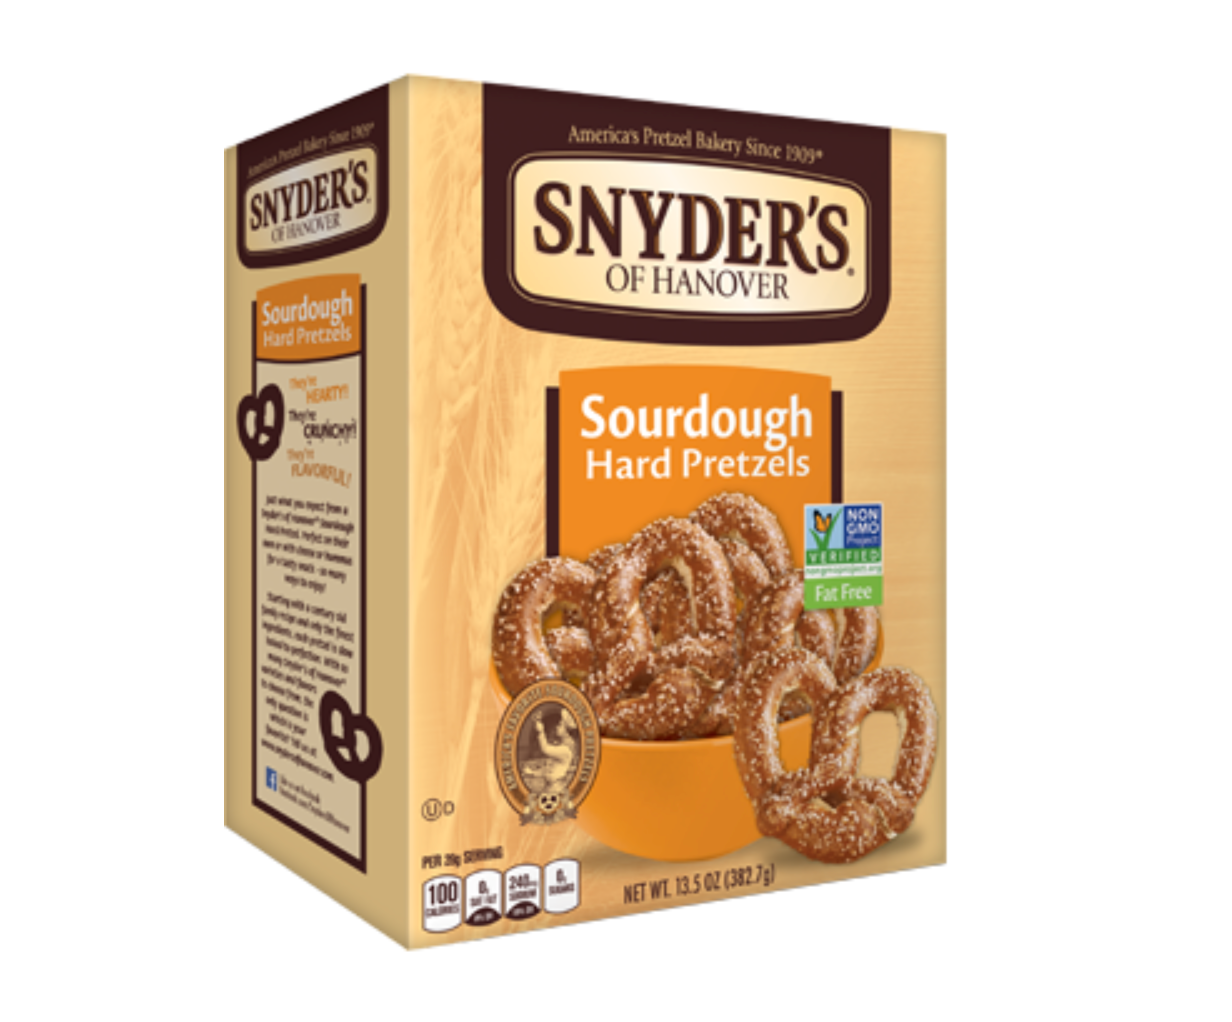 Snyder's Sourdough Pretzels: Big Box (13.5oz) - A Taste of the States